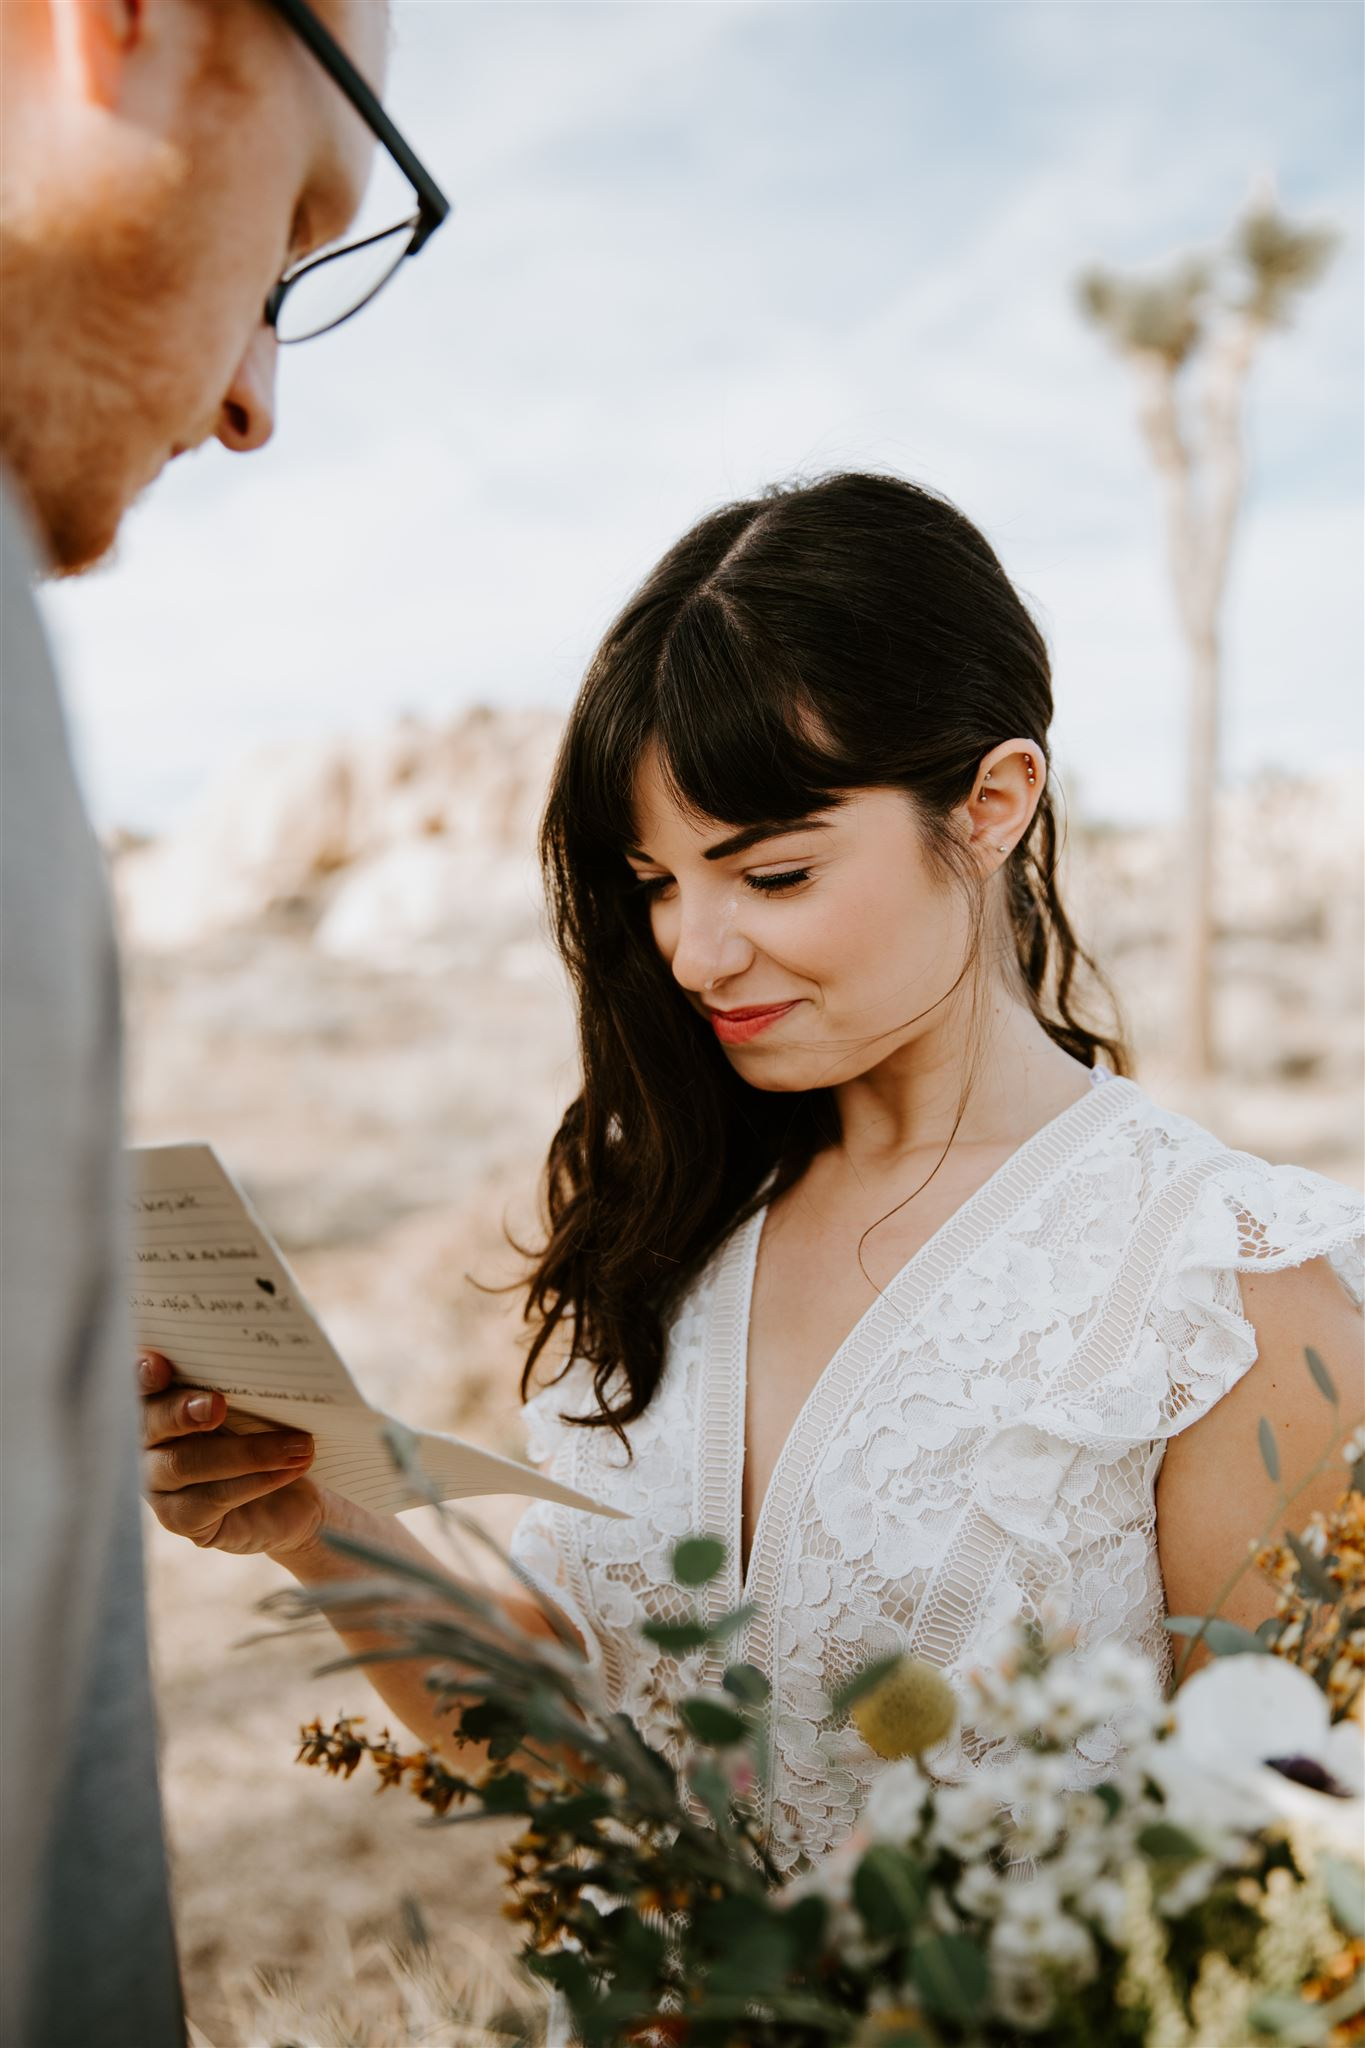 Joshua Tree CA Elopement Wedding  Photographer May Iosotaluno 40.jpg